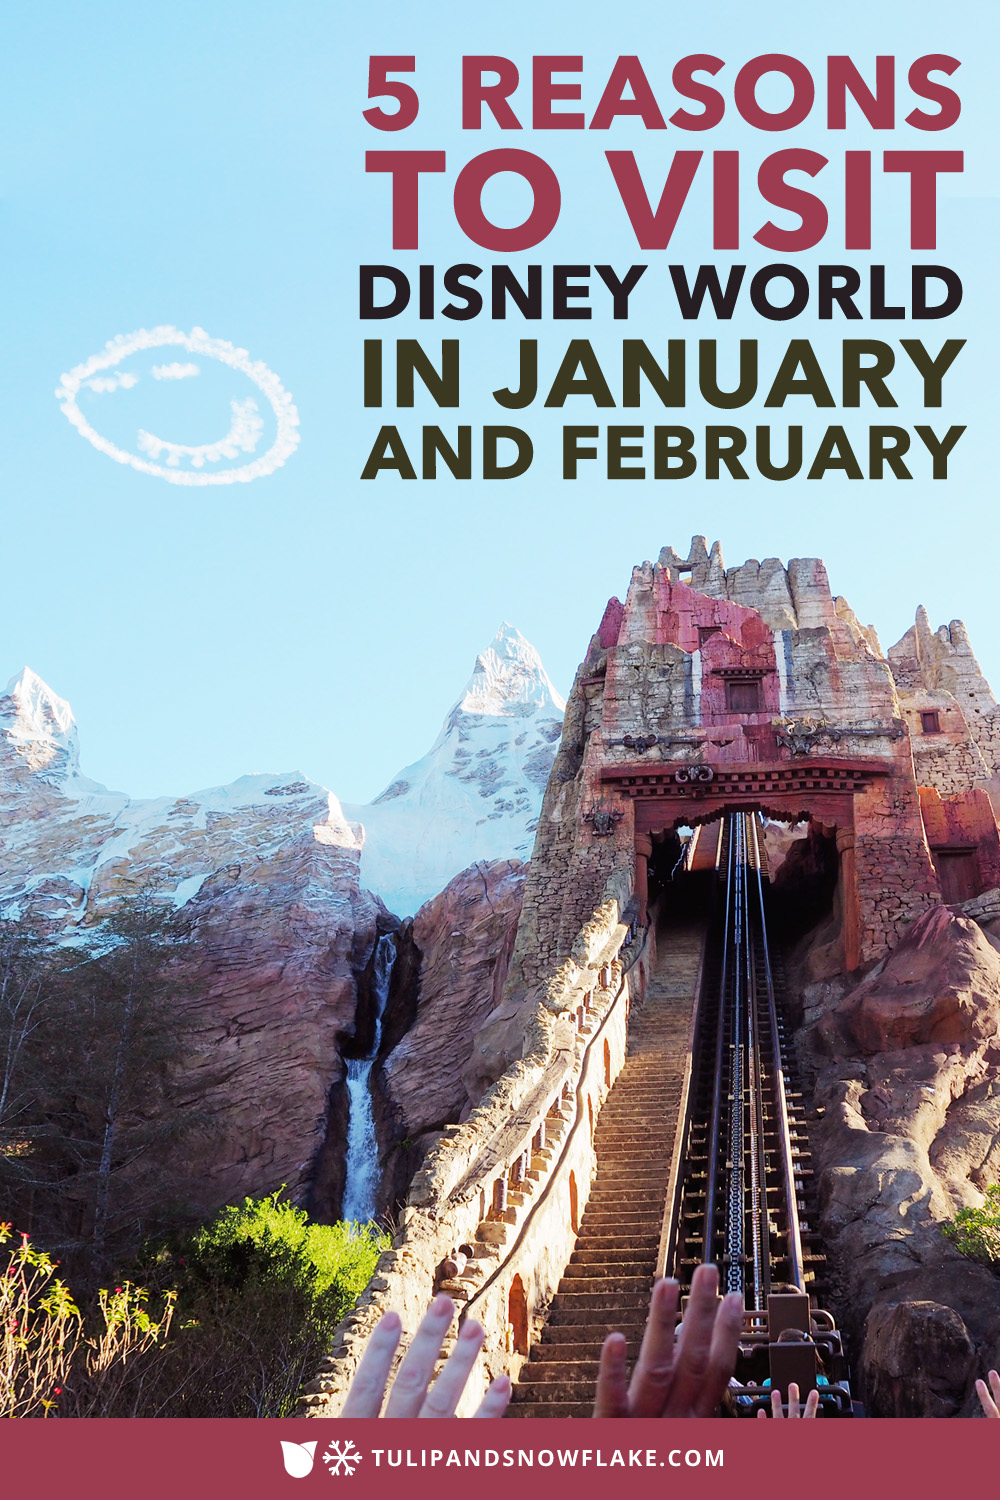 5 Reasons to visit Disney World in January and February